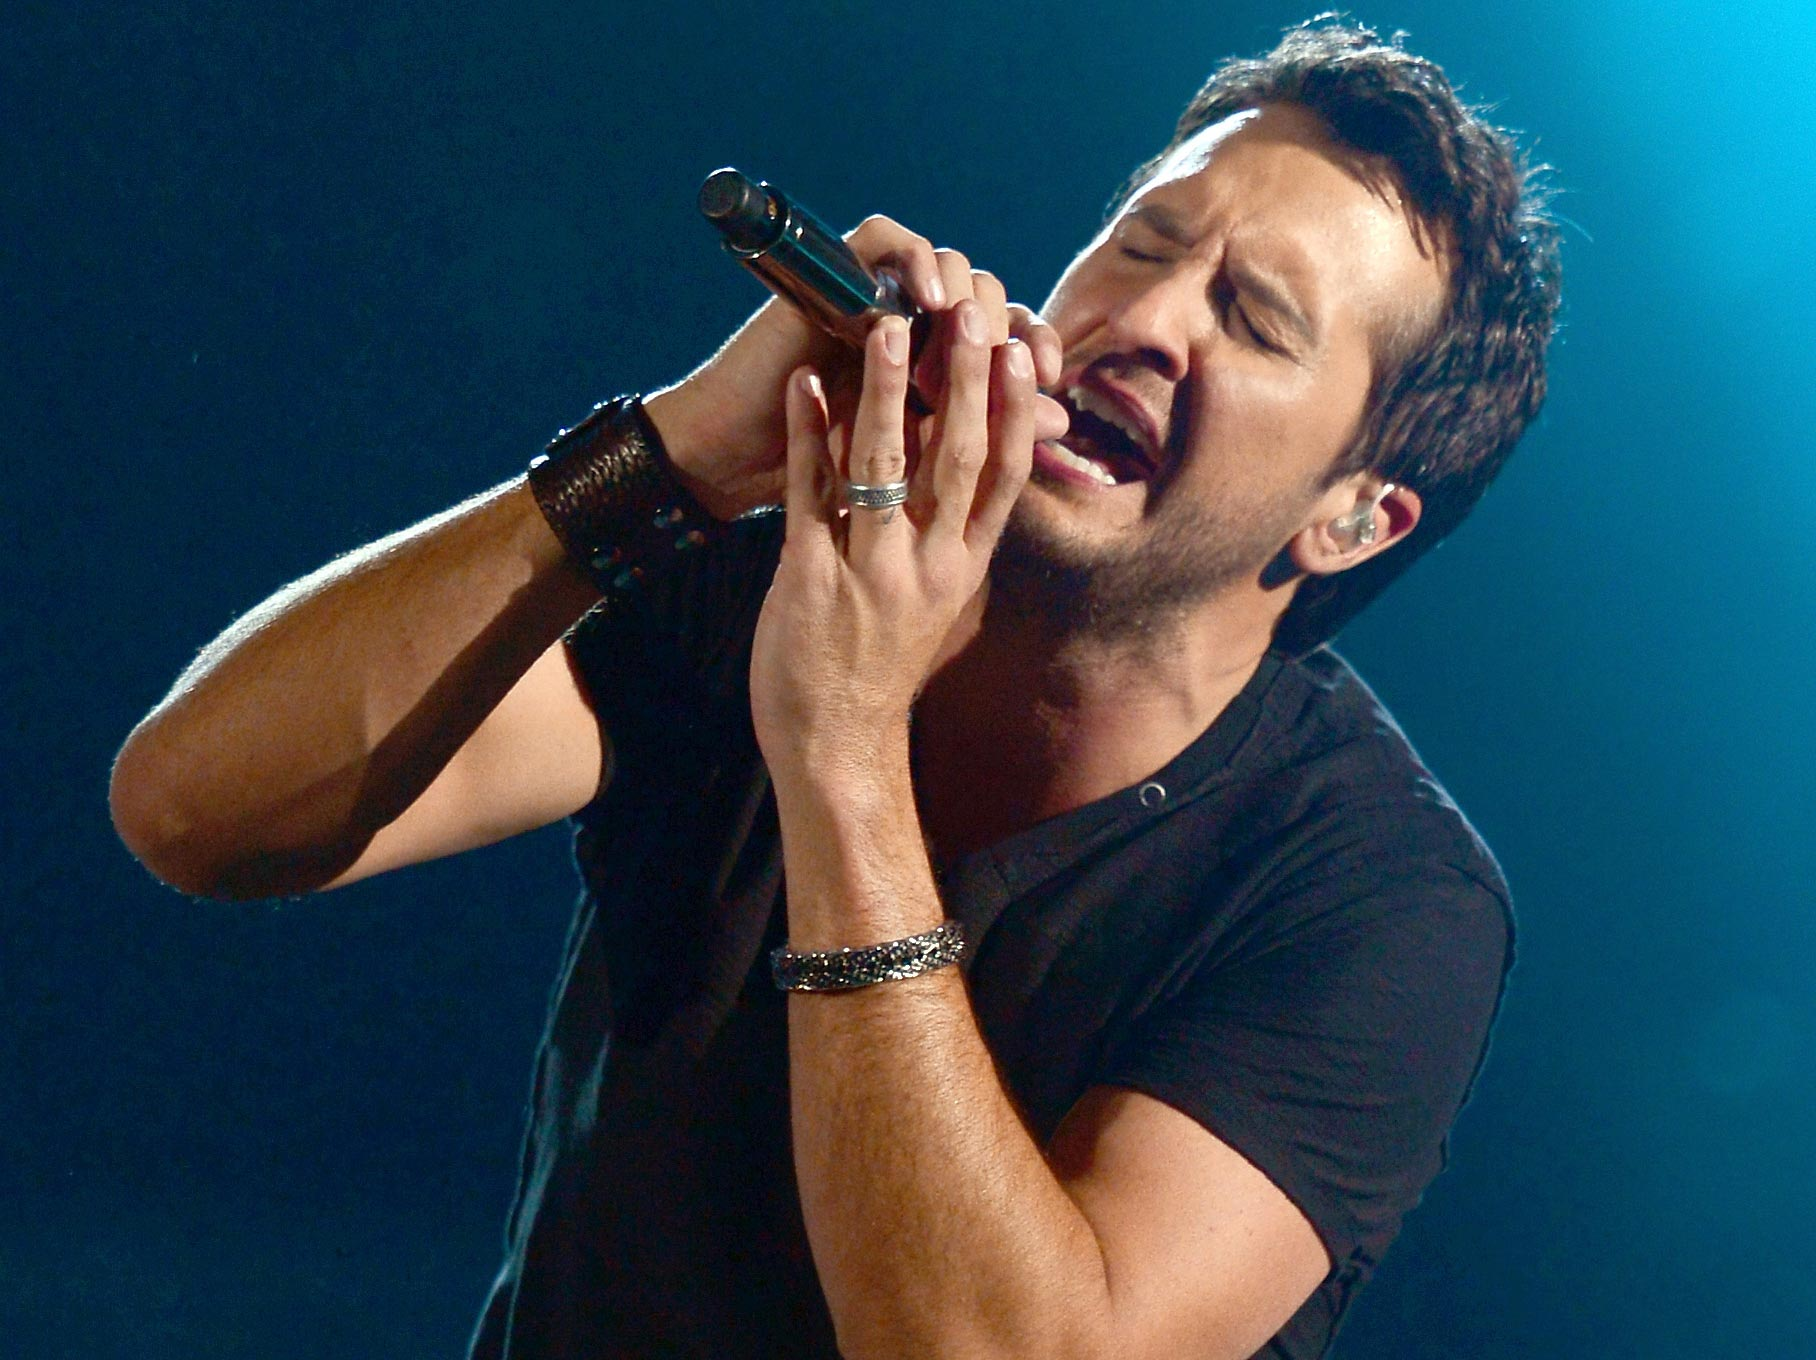 Discount Luke Bryan concert tickets 2014